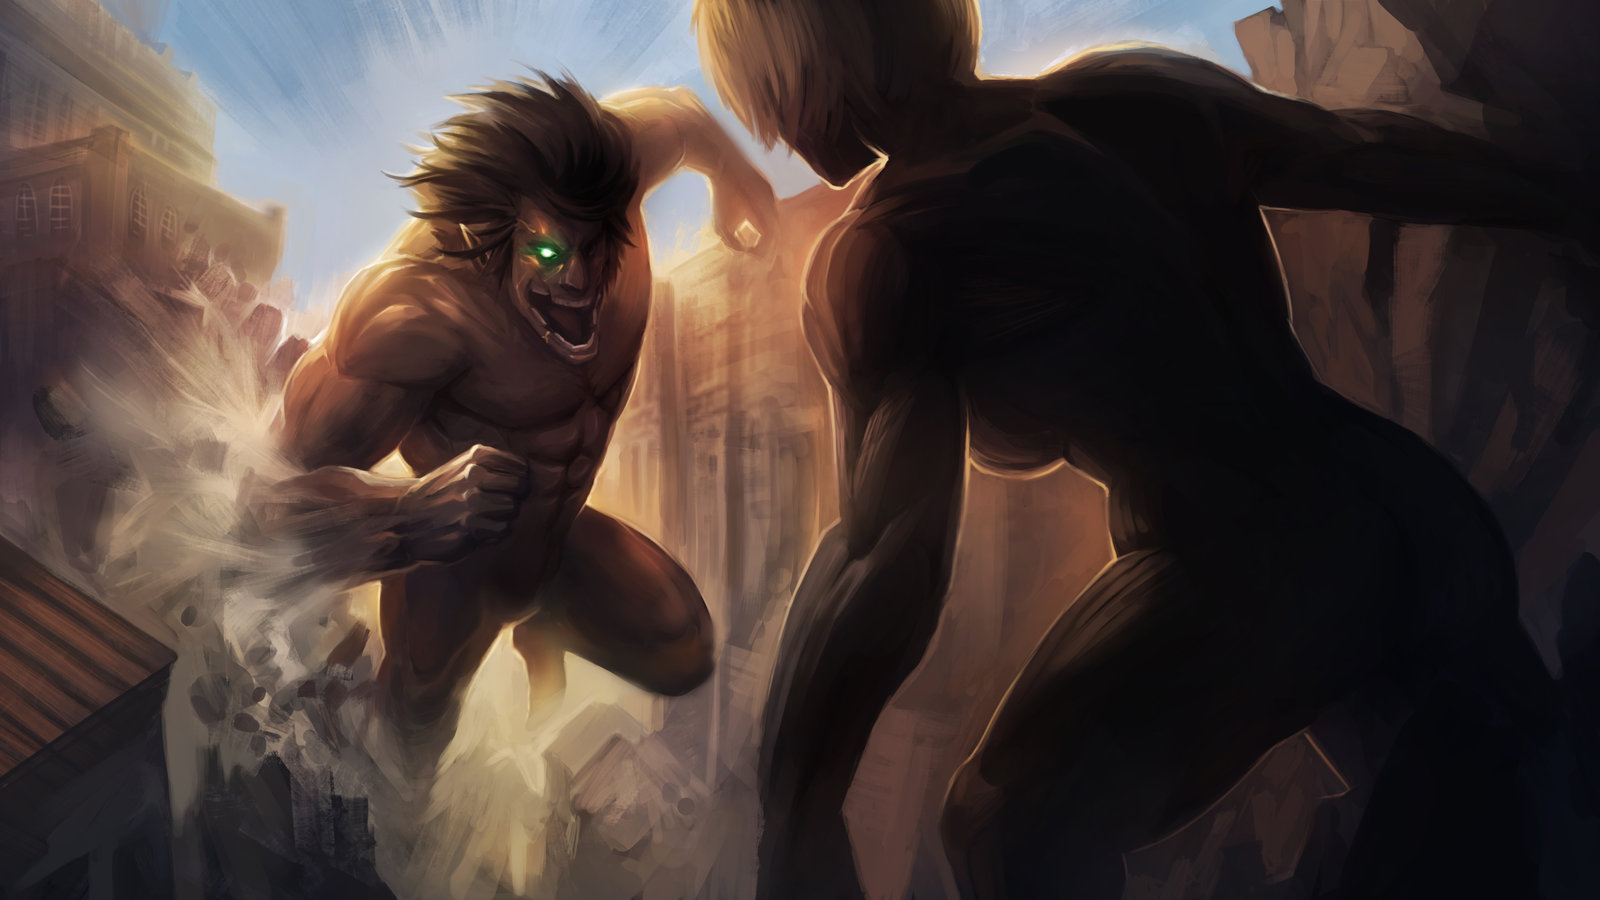 Attack on Titan   Eren vs Annie by MoshYong on deviantART 1600x900